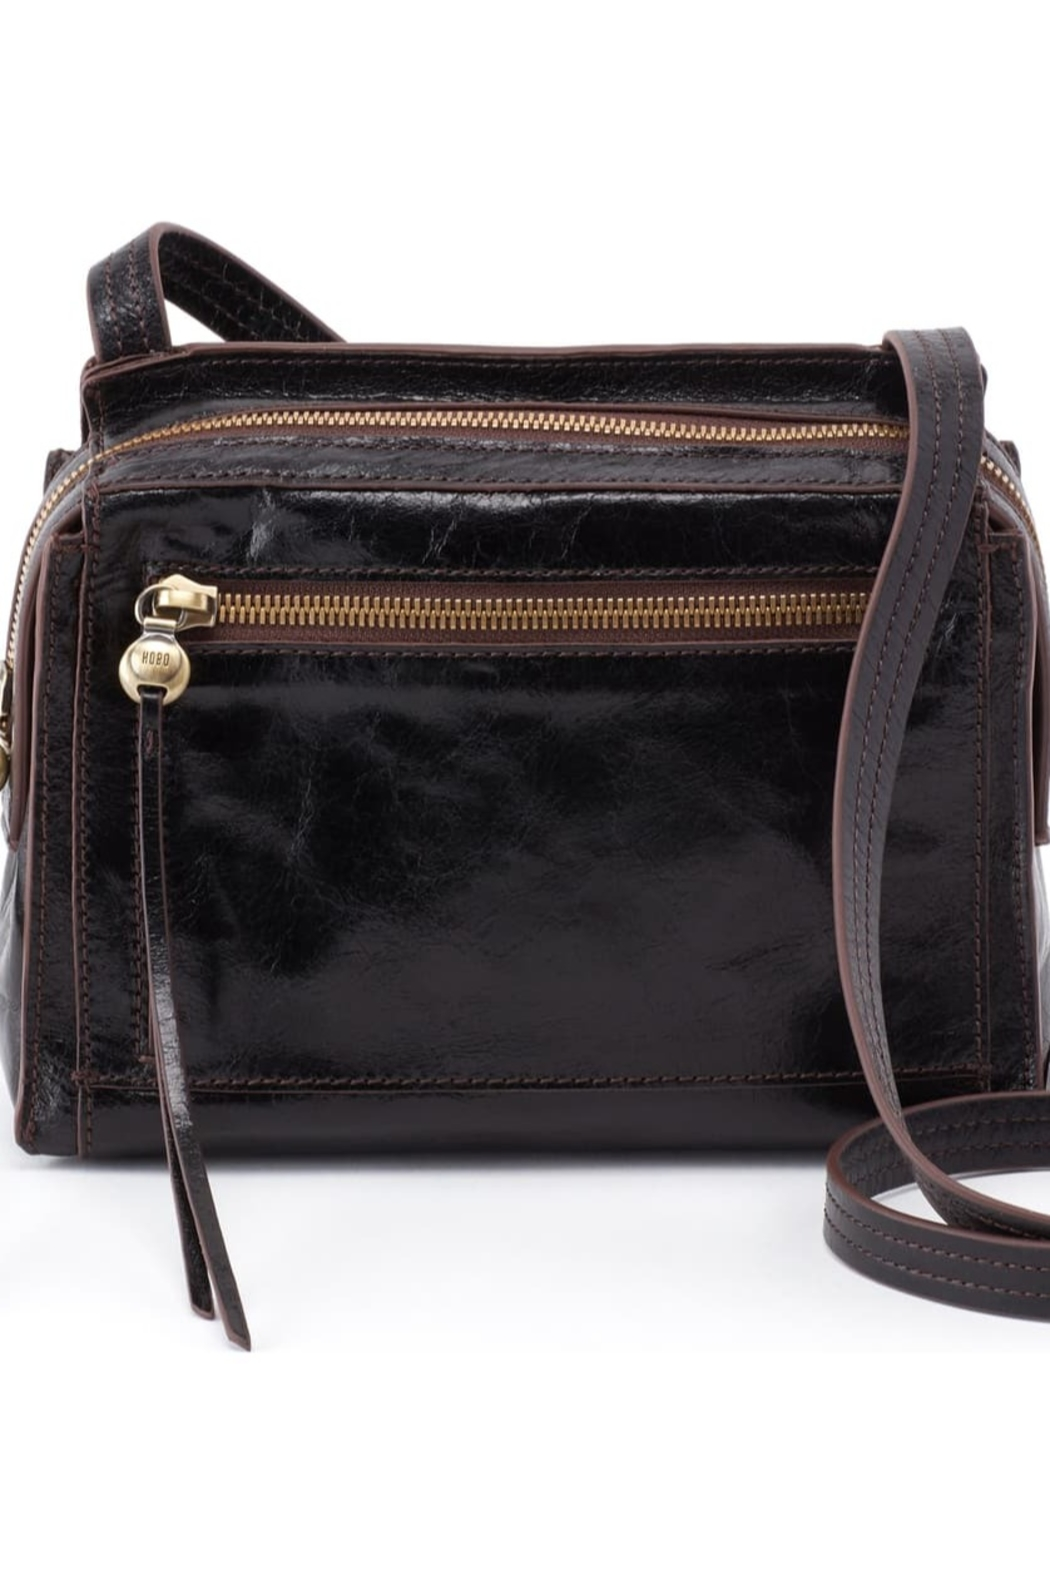 Hobo The Original Hobo the Original Hunter Crossbody - Main Image